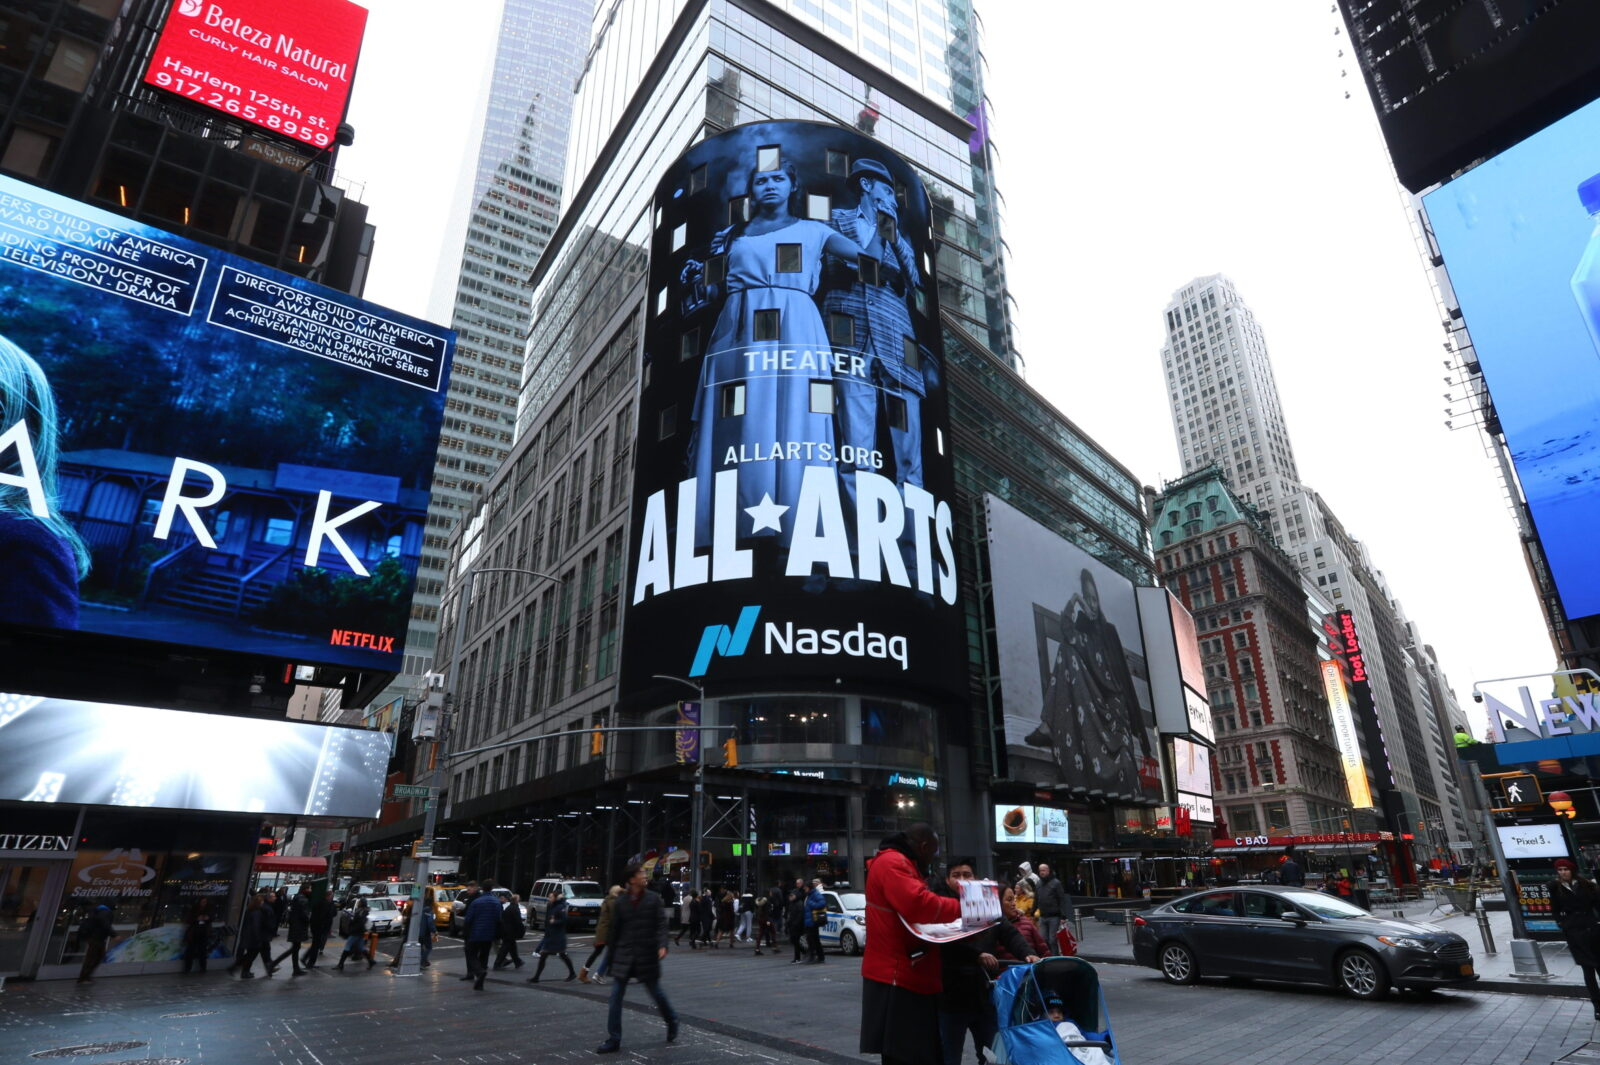 WNET All Arts Times Square Advertising